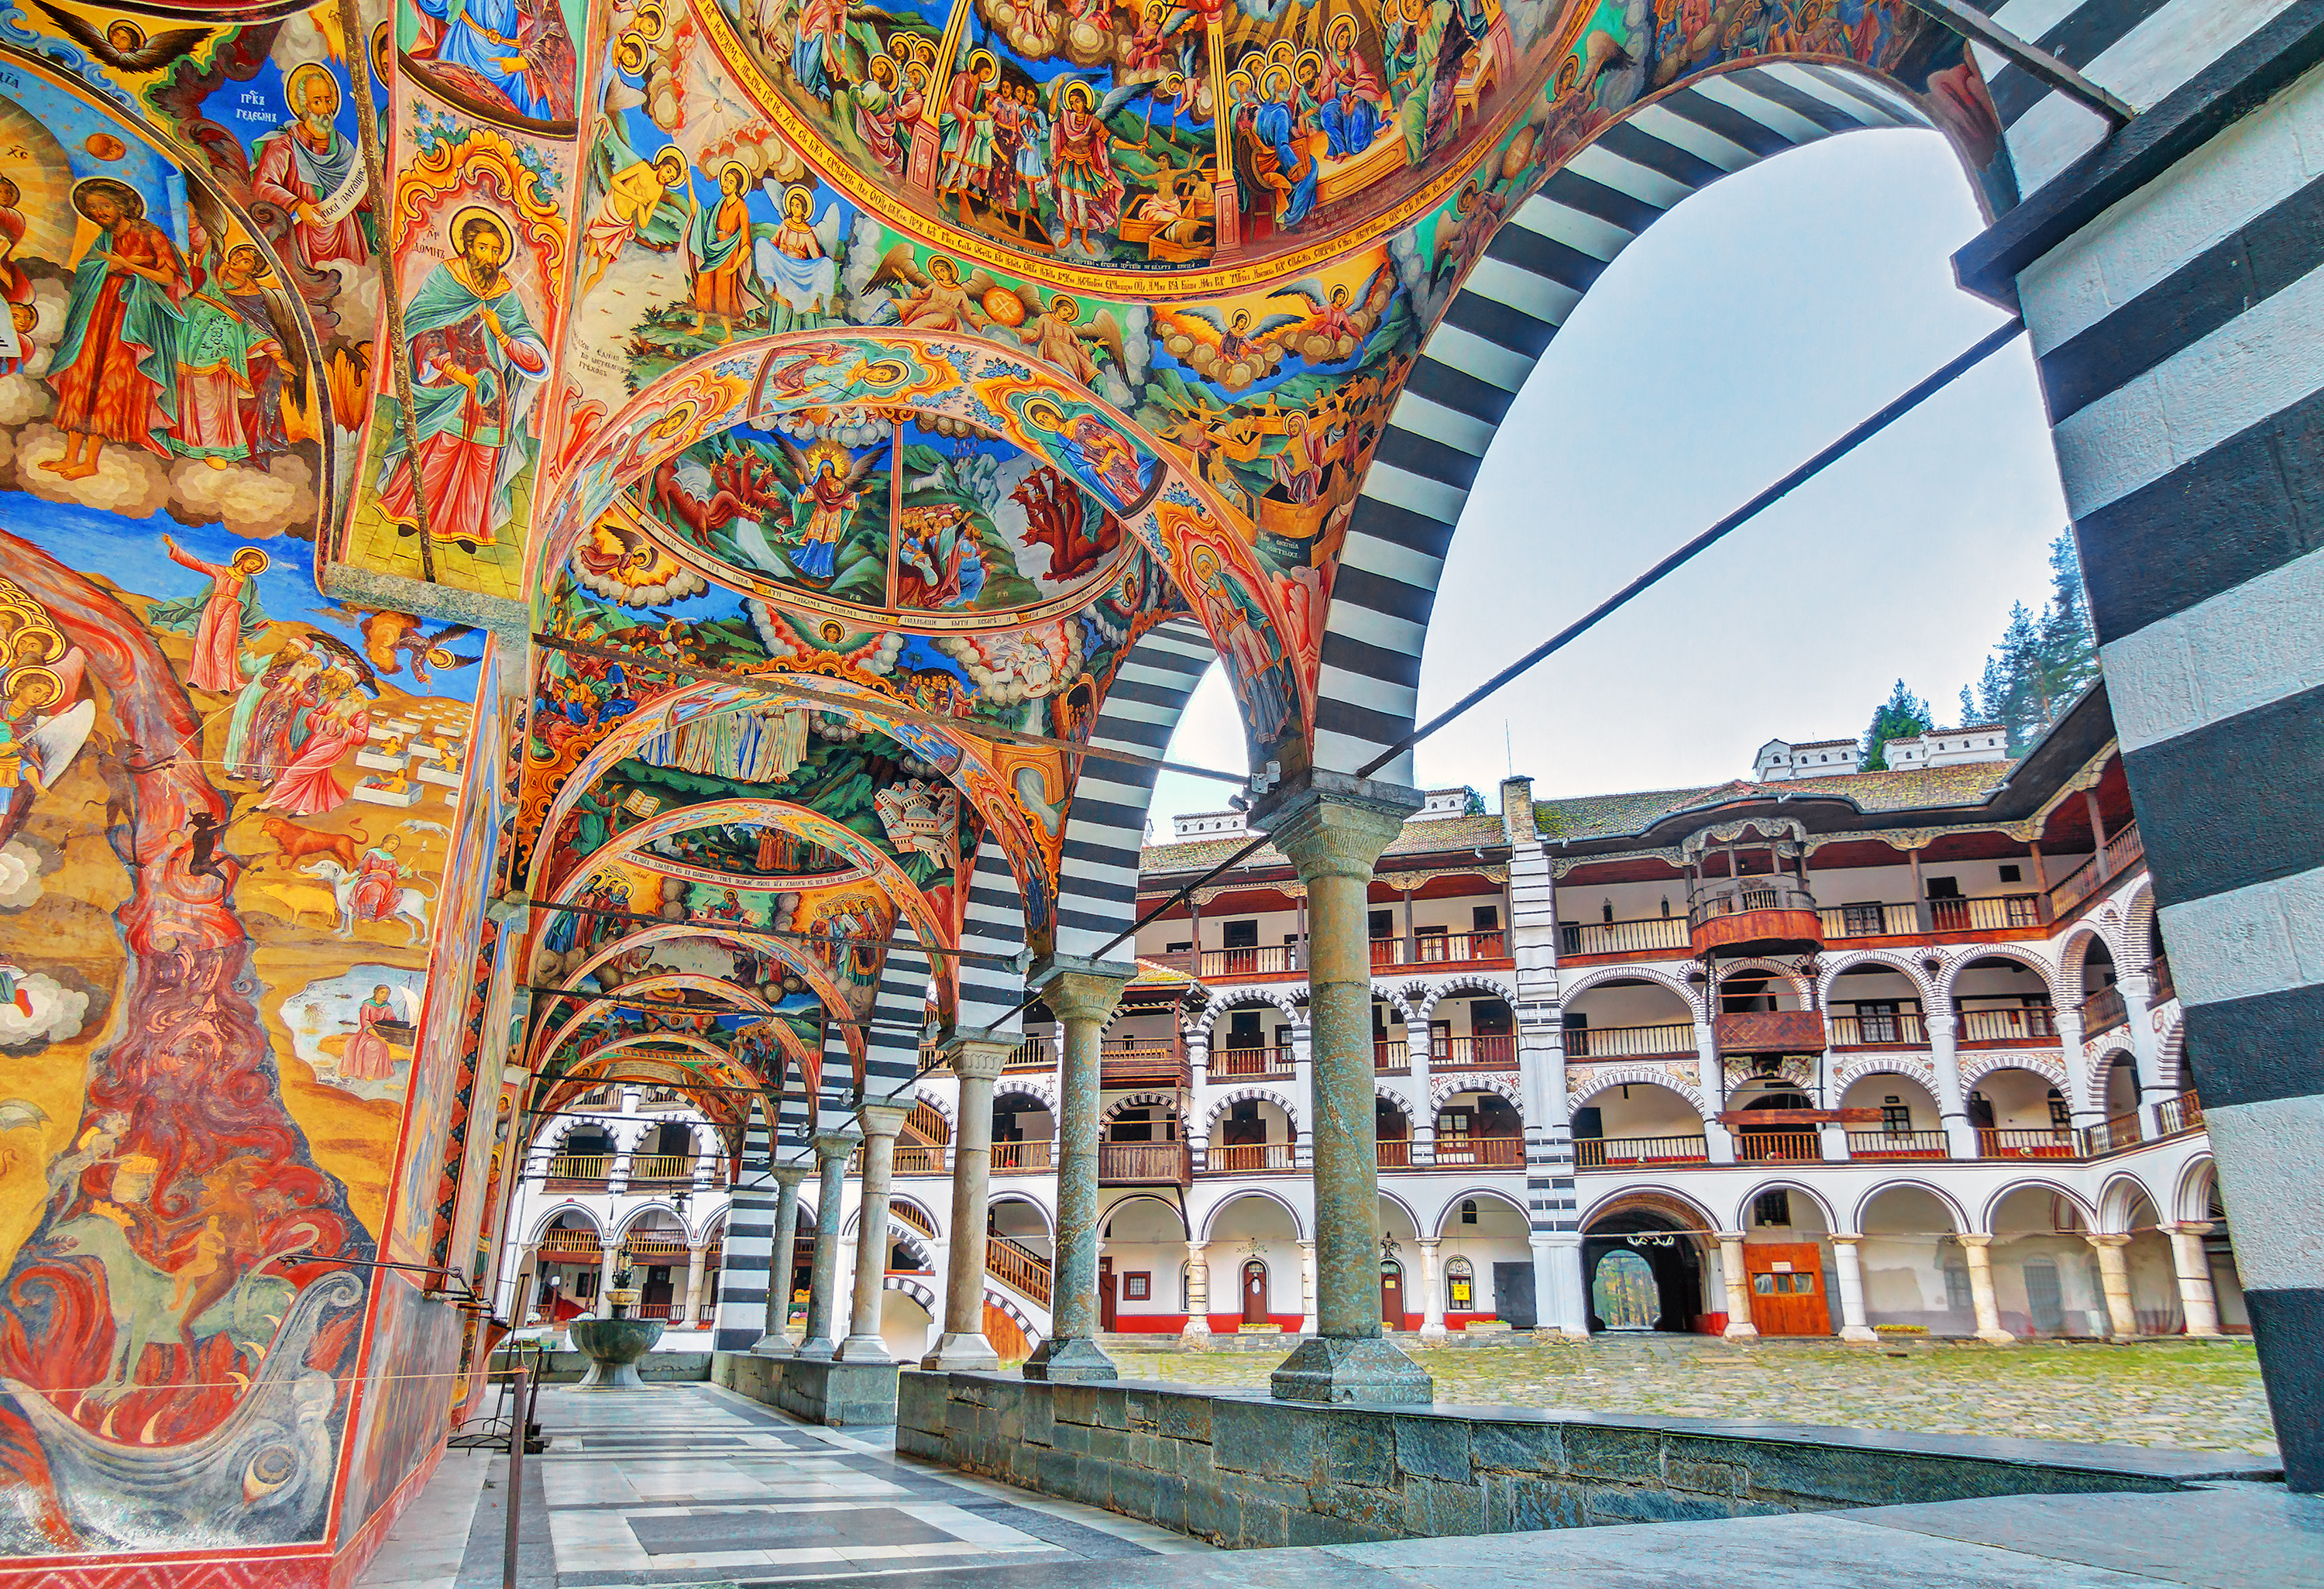 The vivid interior of the famous Rila Monastery